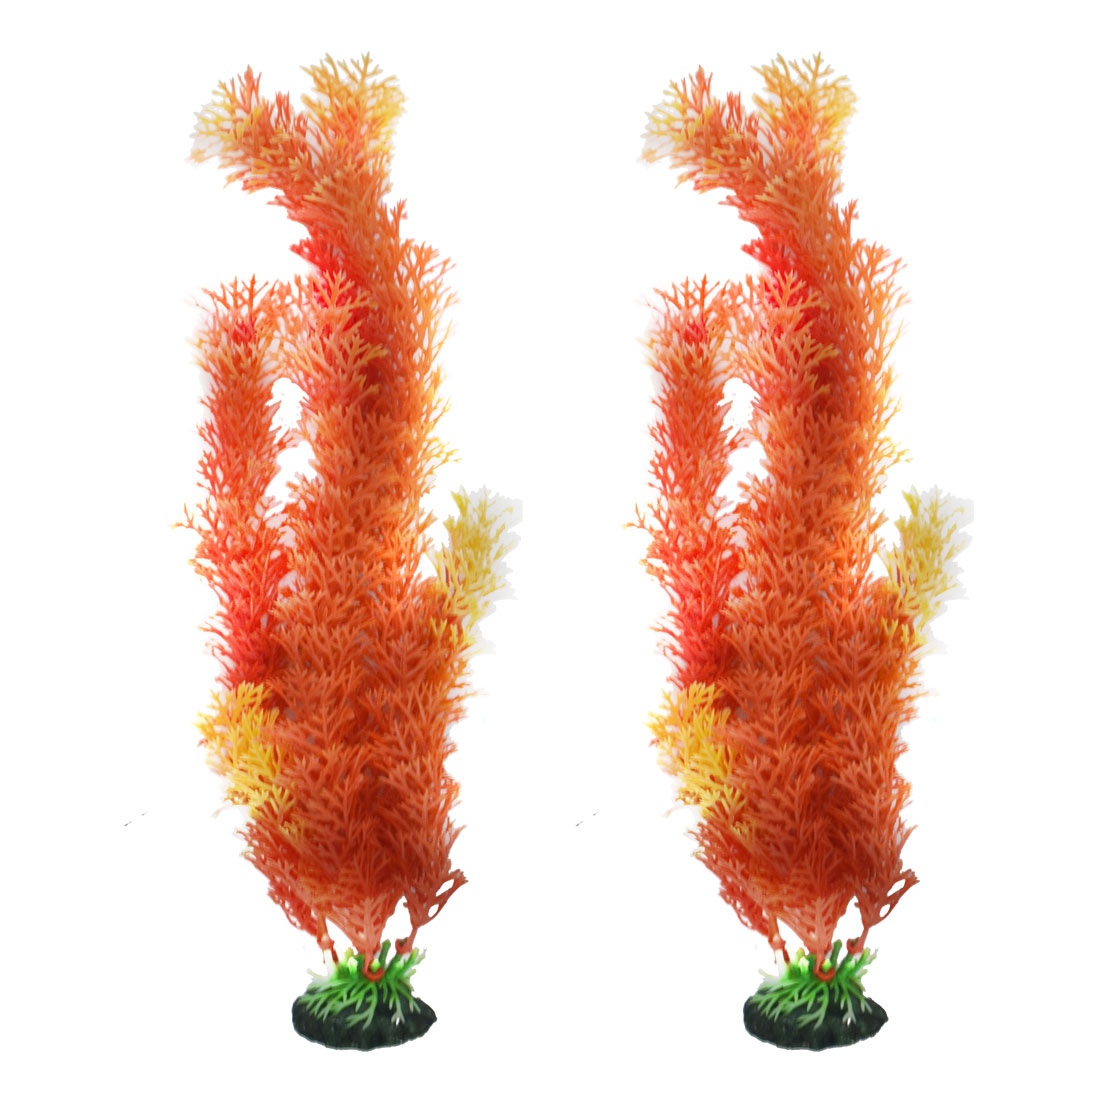 Aquarium Fish Bowl Plastic Artificial Manmade Water Plant Grass Decor Ornament Orange 2pcs